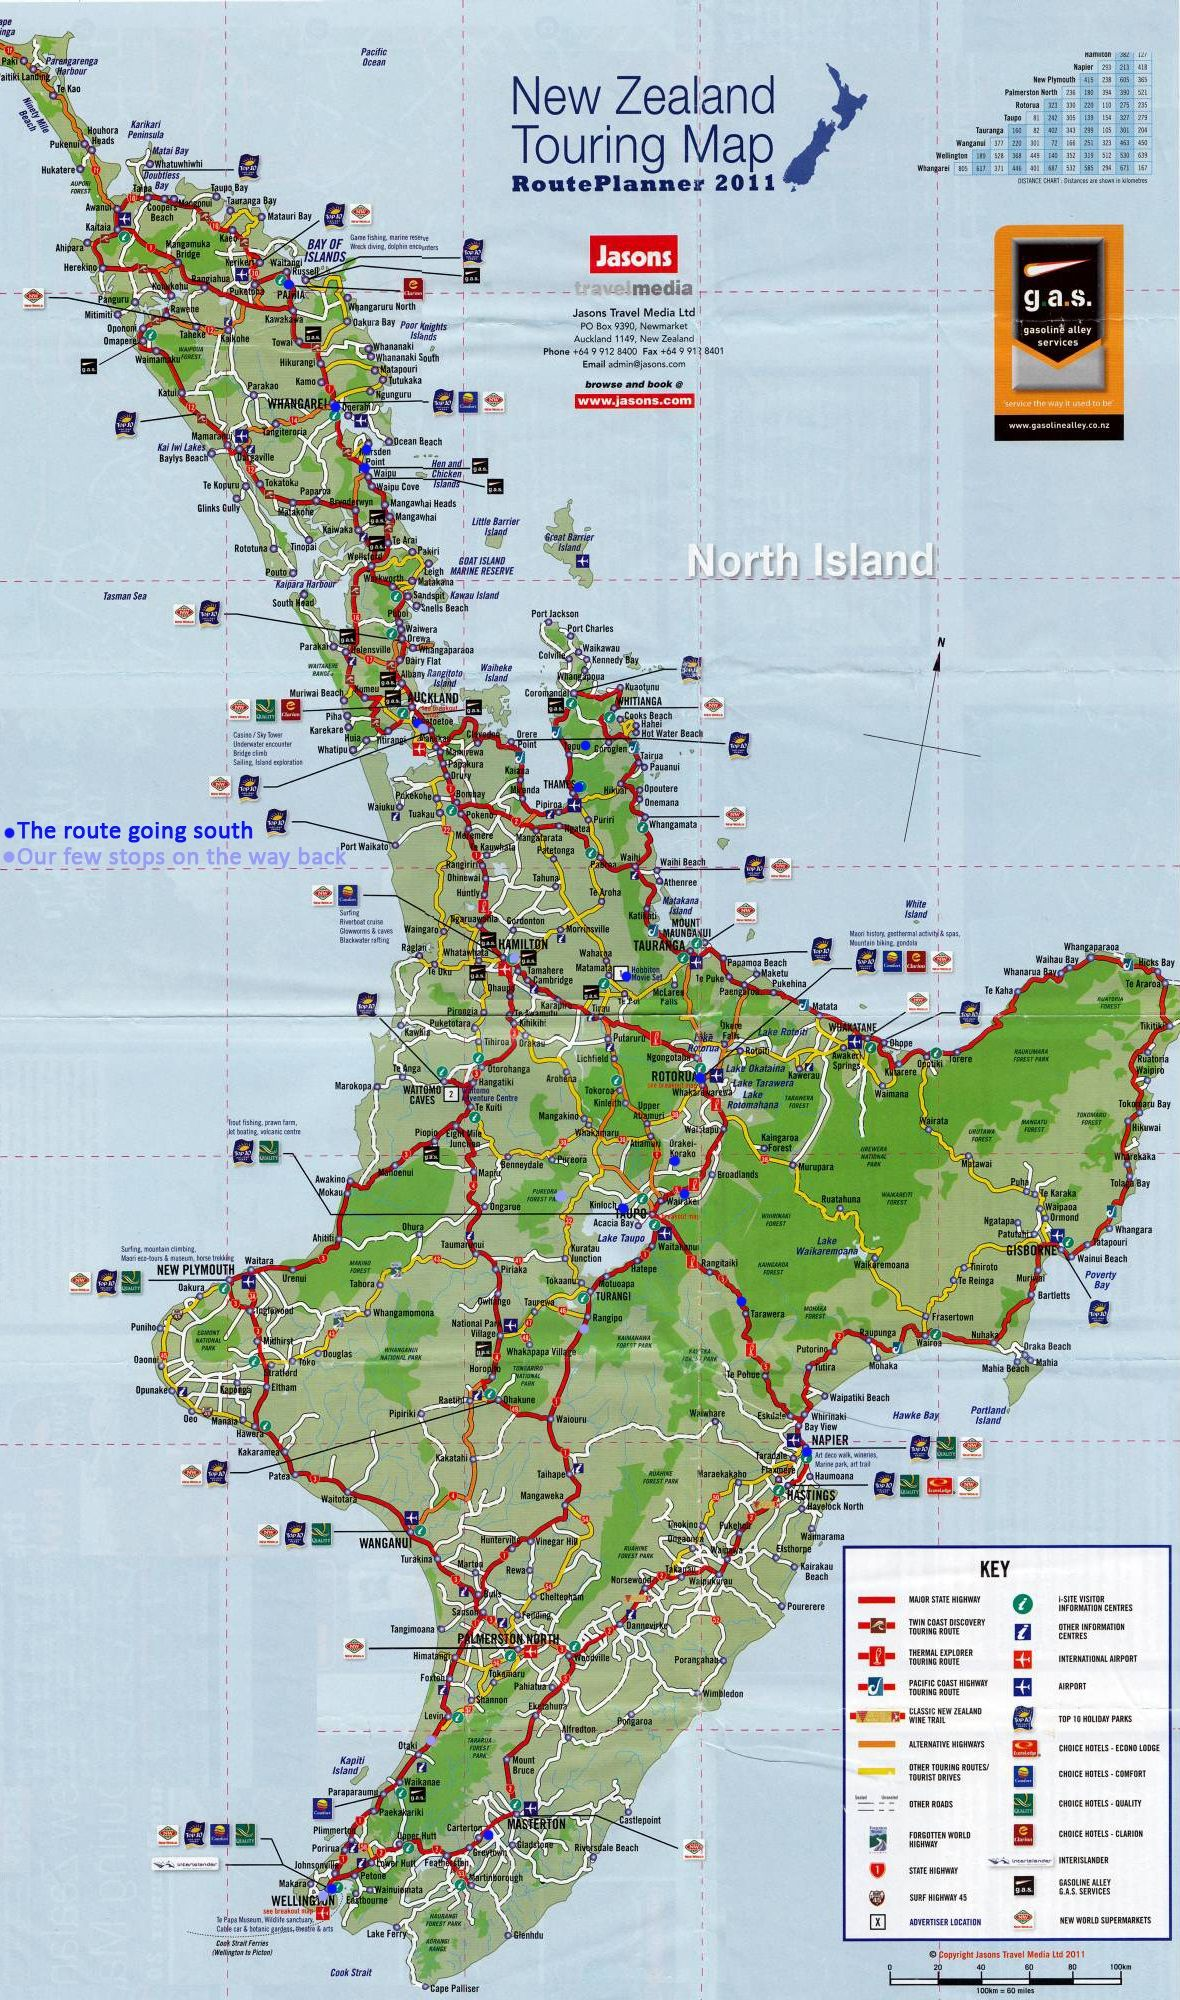 Map Of New Zealand North Island.New Zealand Map North Island If You Want To Enlarge This I Ve